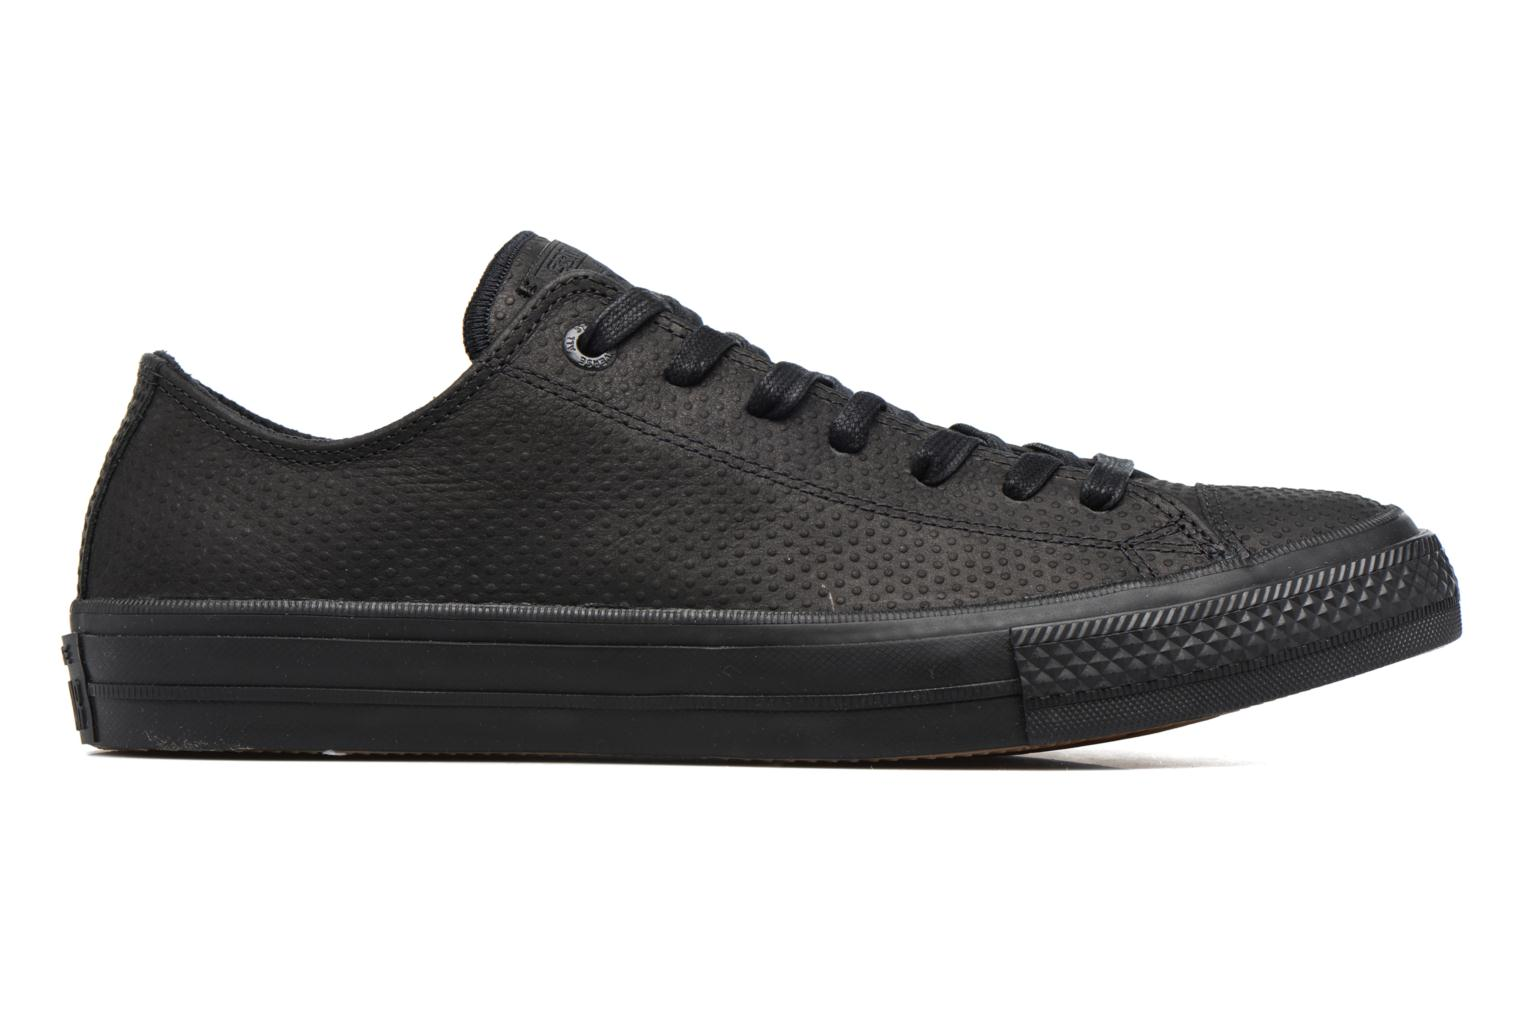 Chuck Taylor All Star II Ox Lux Leather